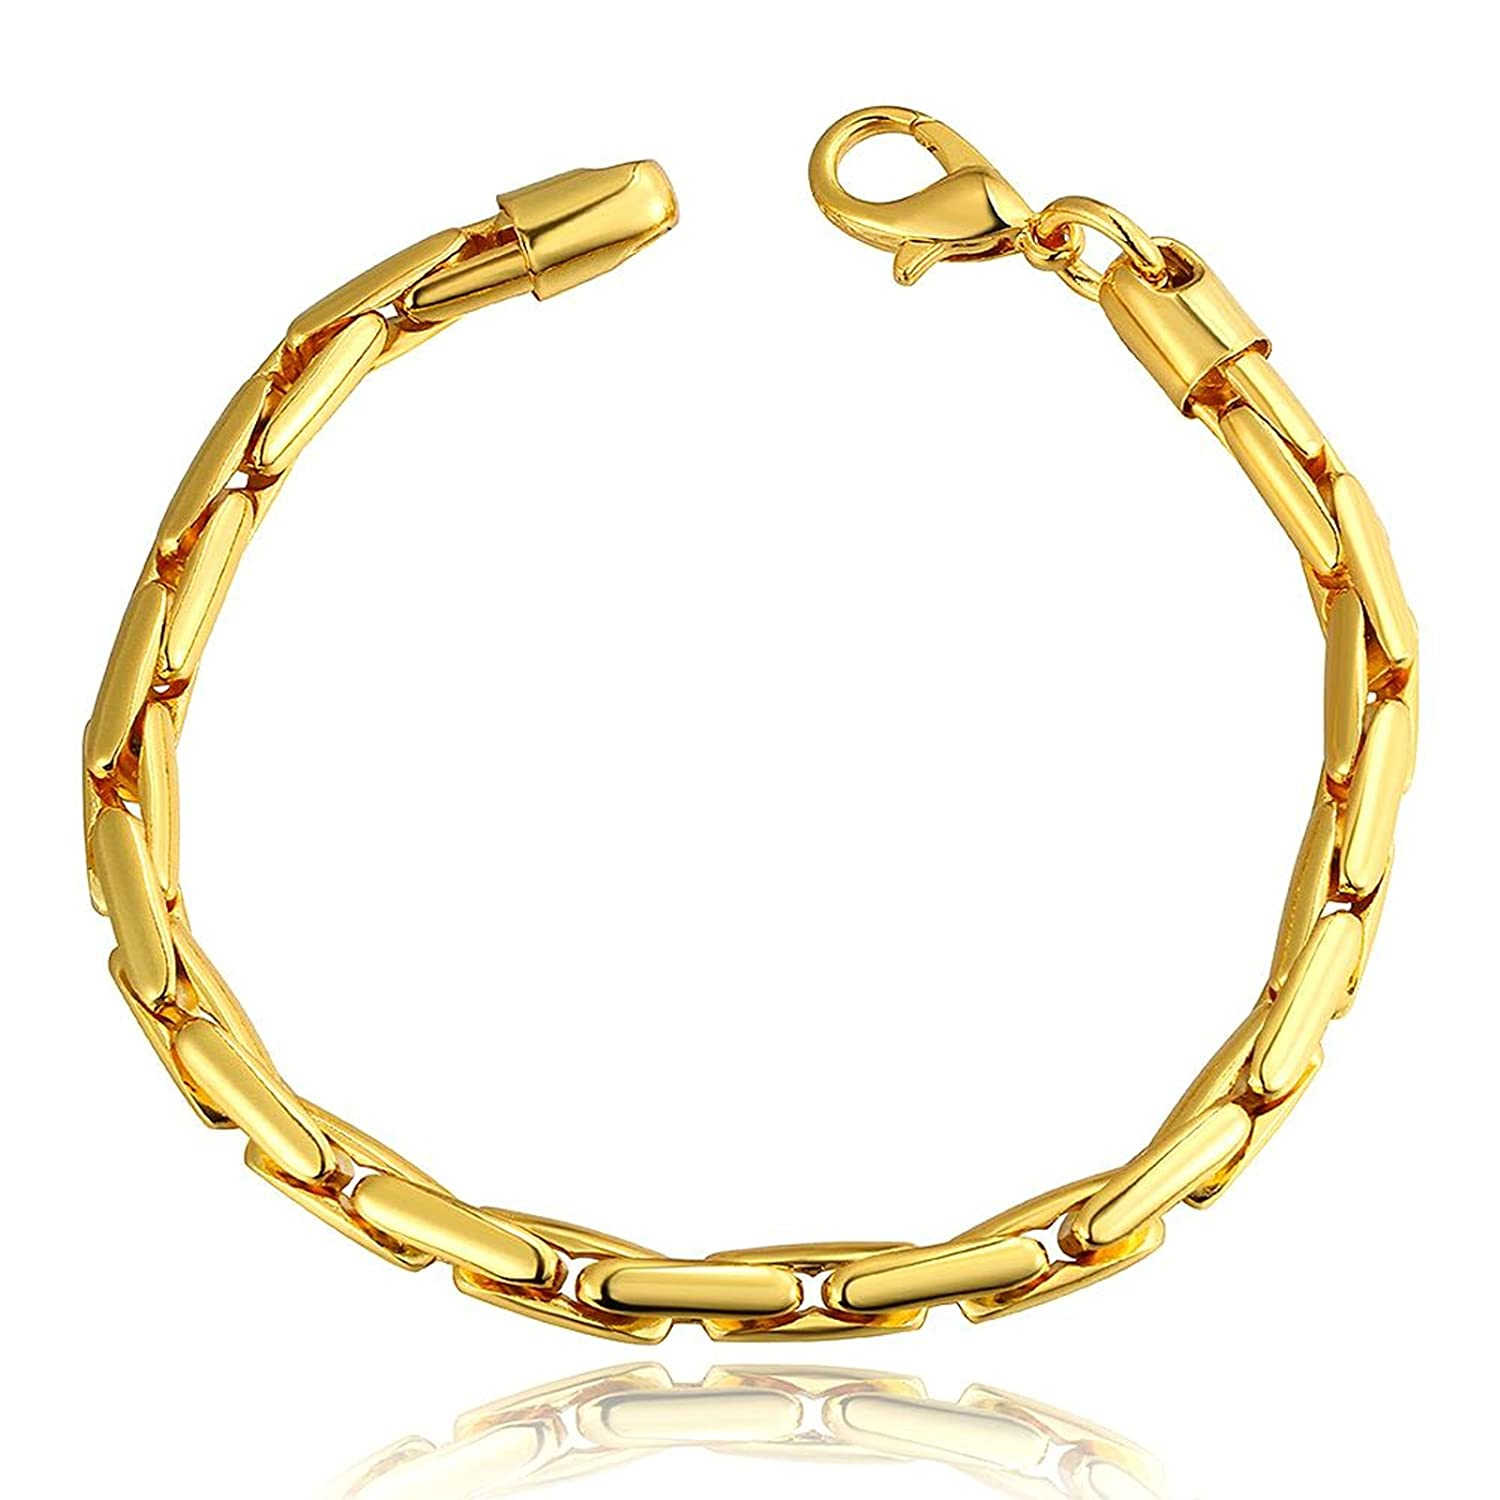 Charm Bracelet,Gold Plated Gold Lobster Claw Link Bracelet Bangle for Women Girl Gold Aokarry Jewelry